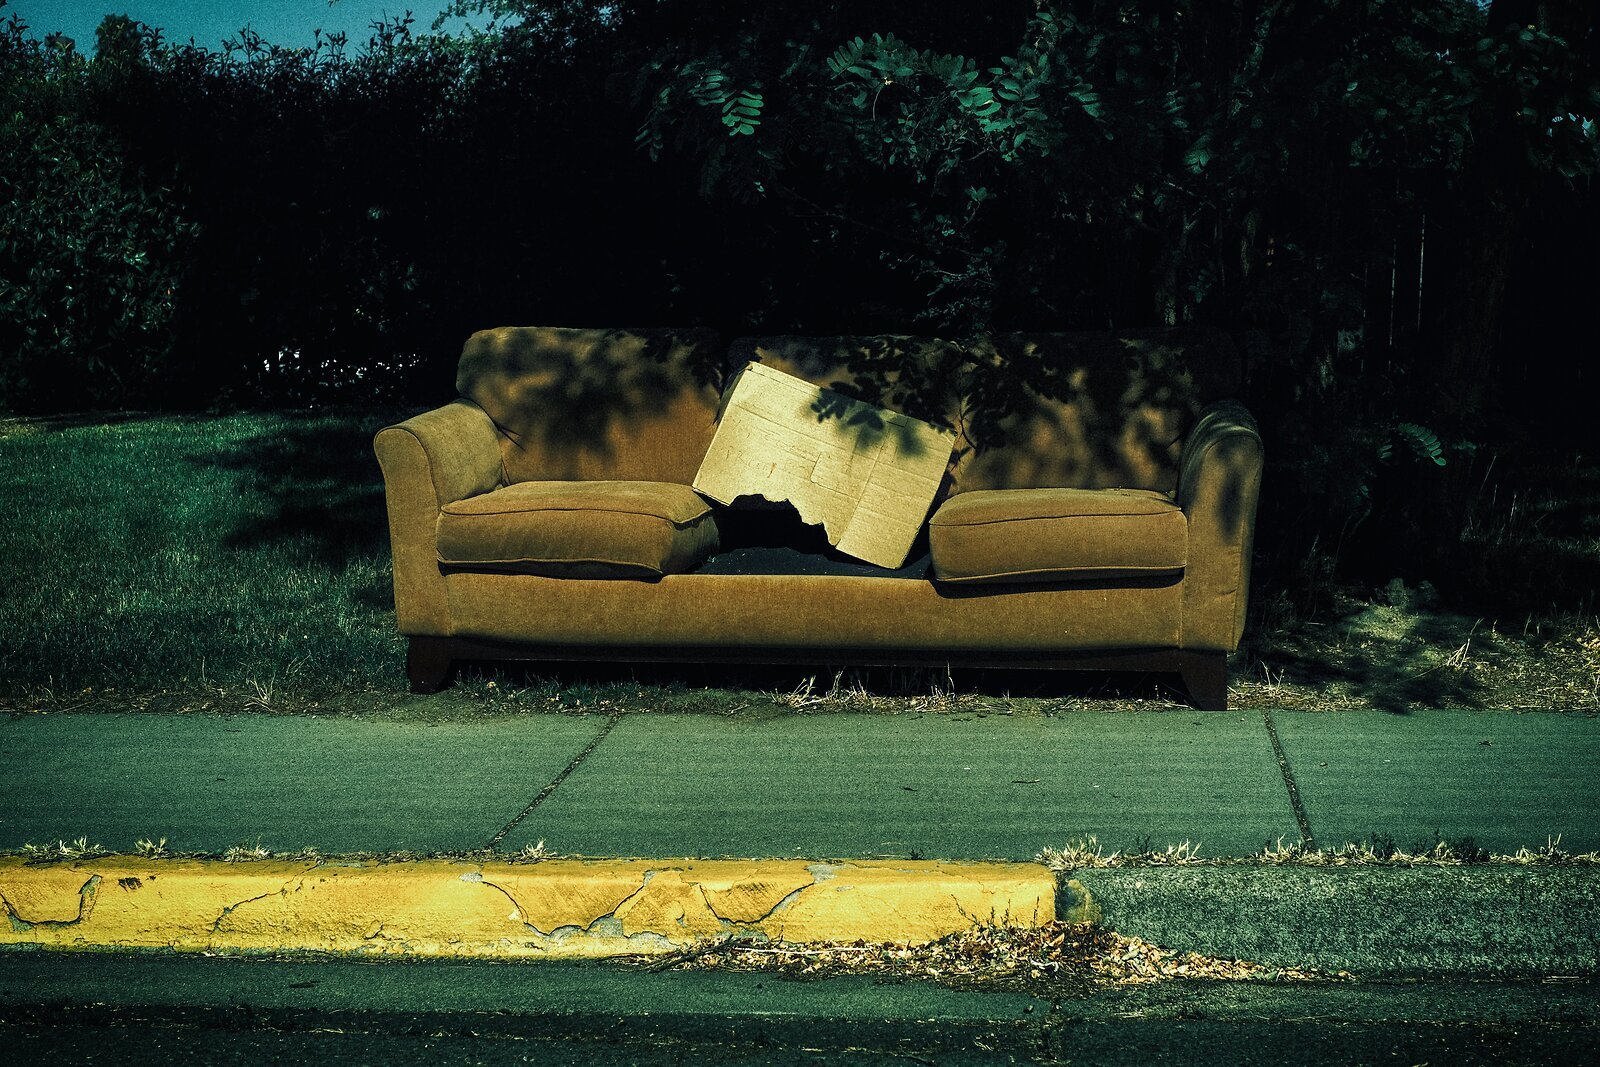 XPro3_July7_21_abandoned_couch(Xpro_62).jpg